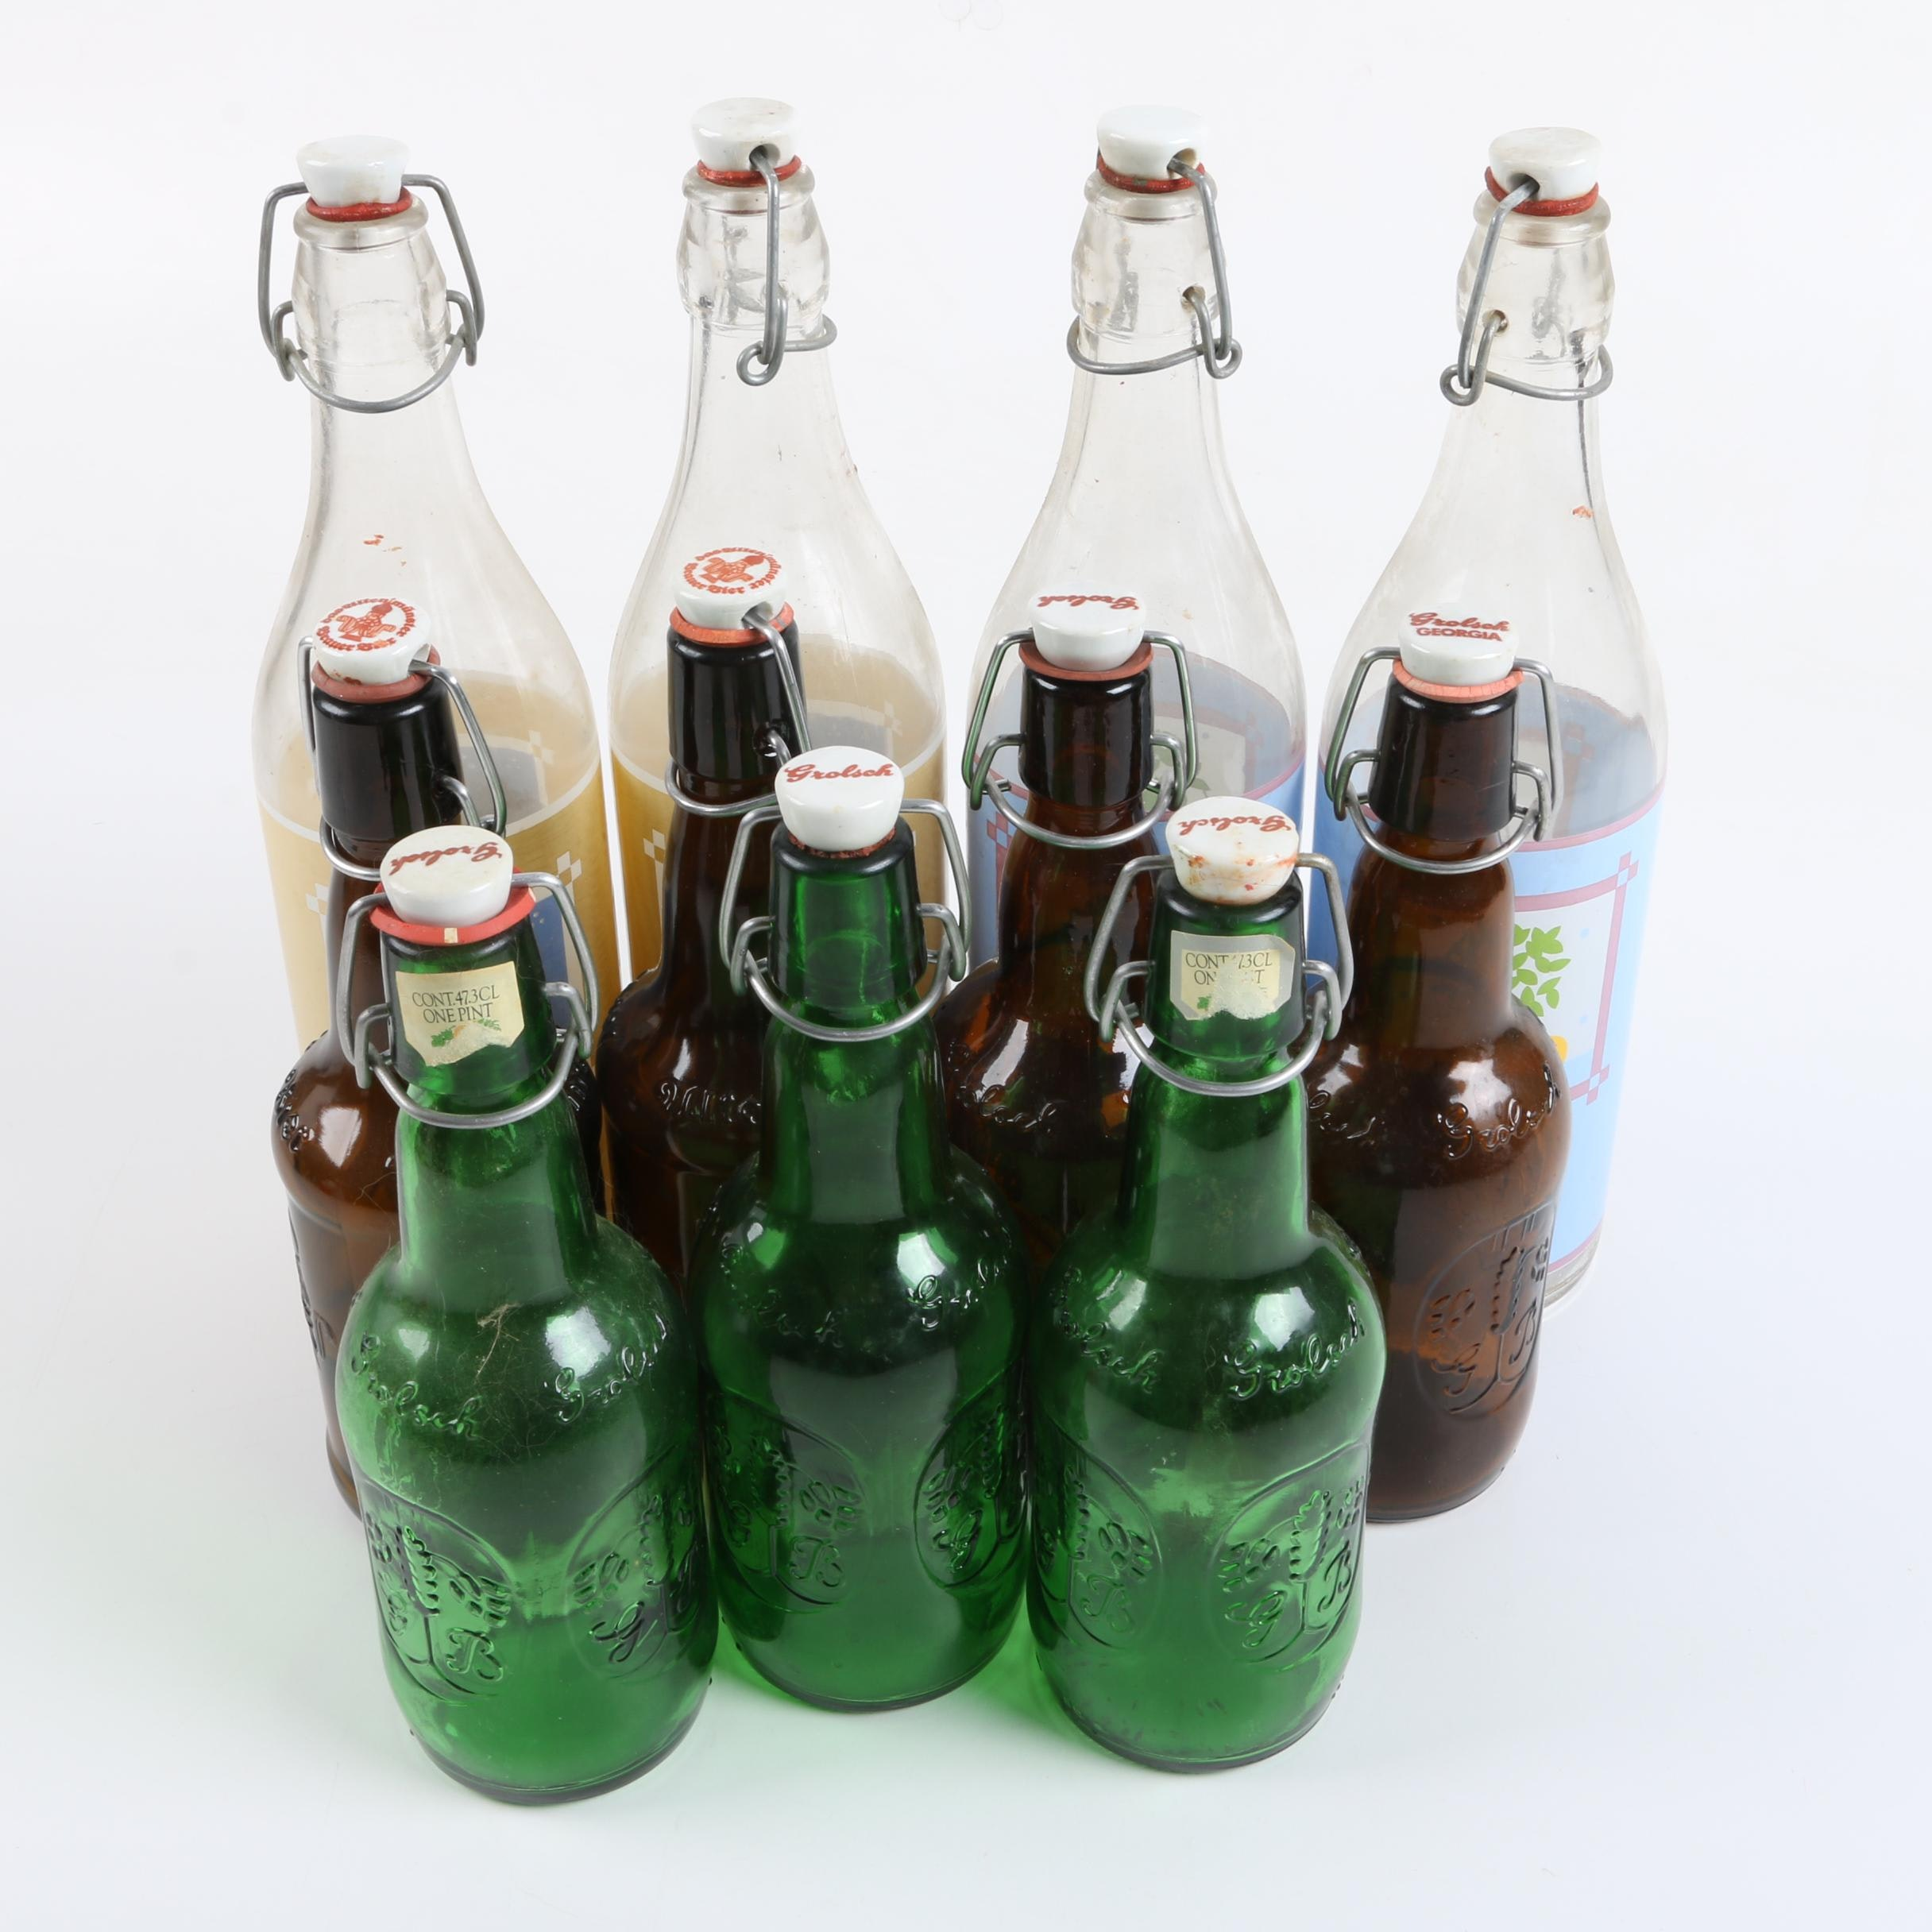 Grolsch and Other Beer and Italian Iced Tea Bottles